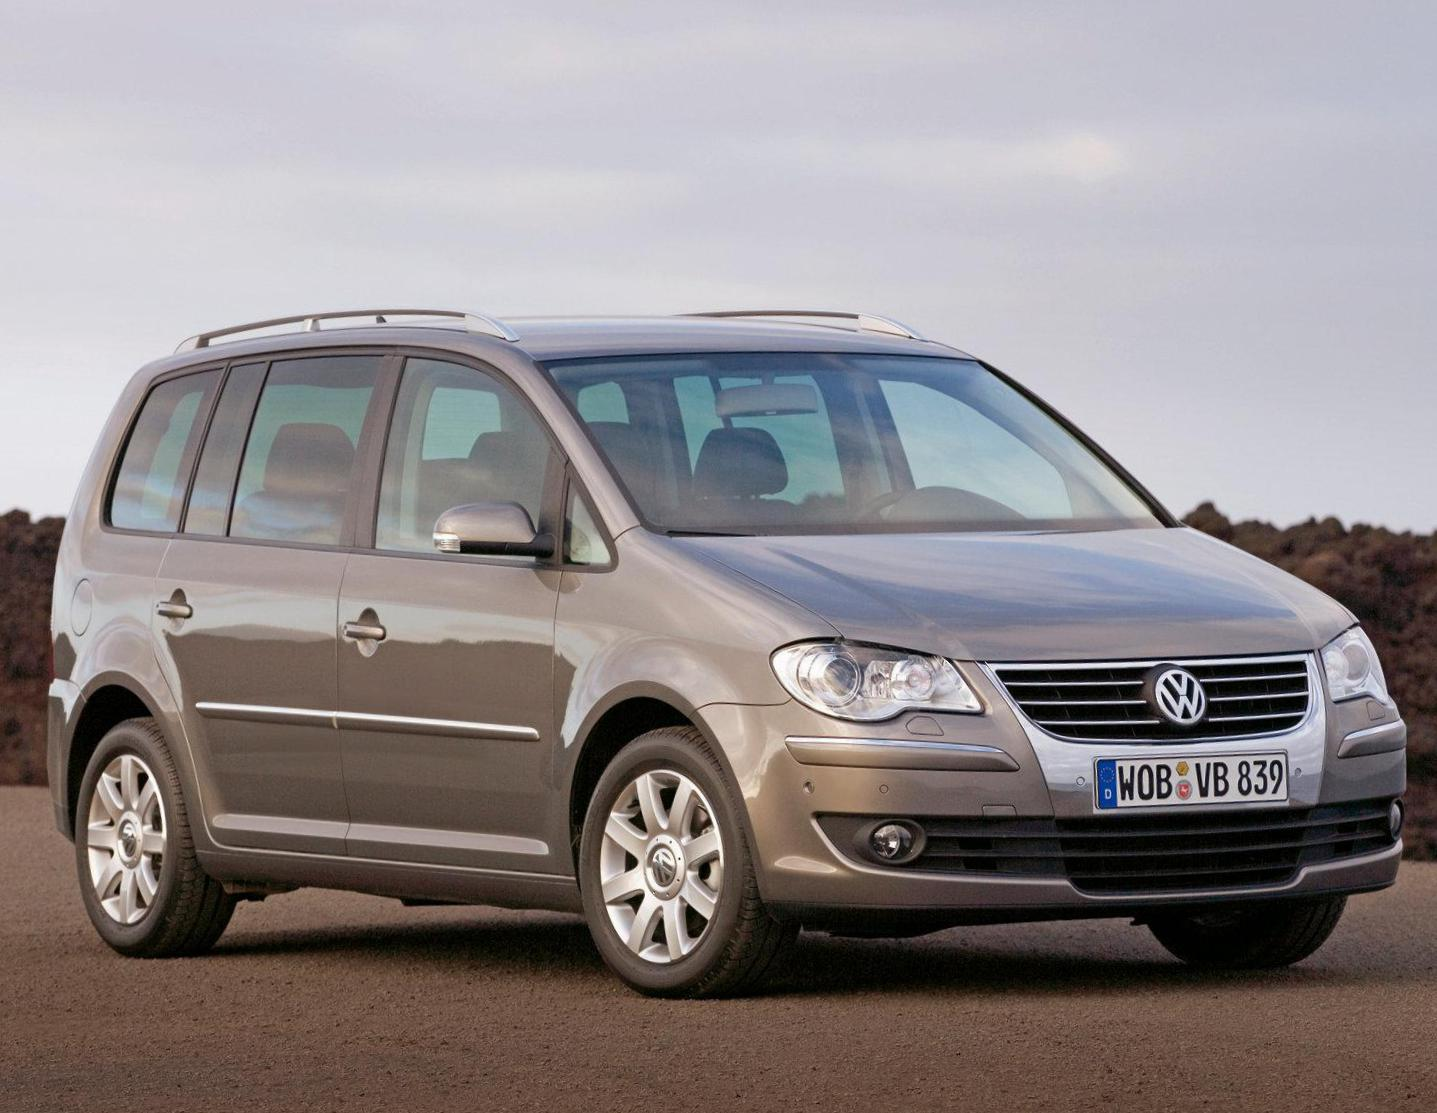 Volkswagen Touran approved wagon